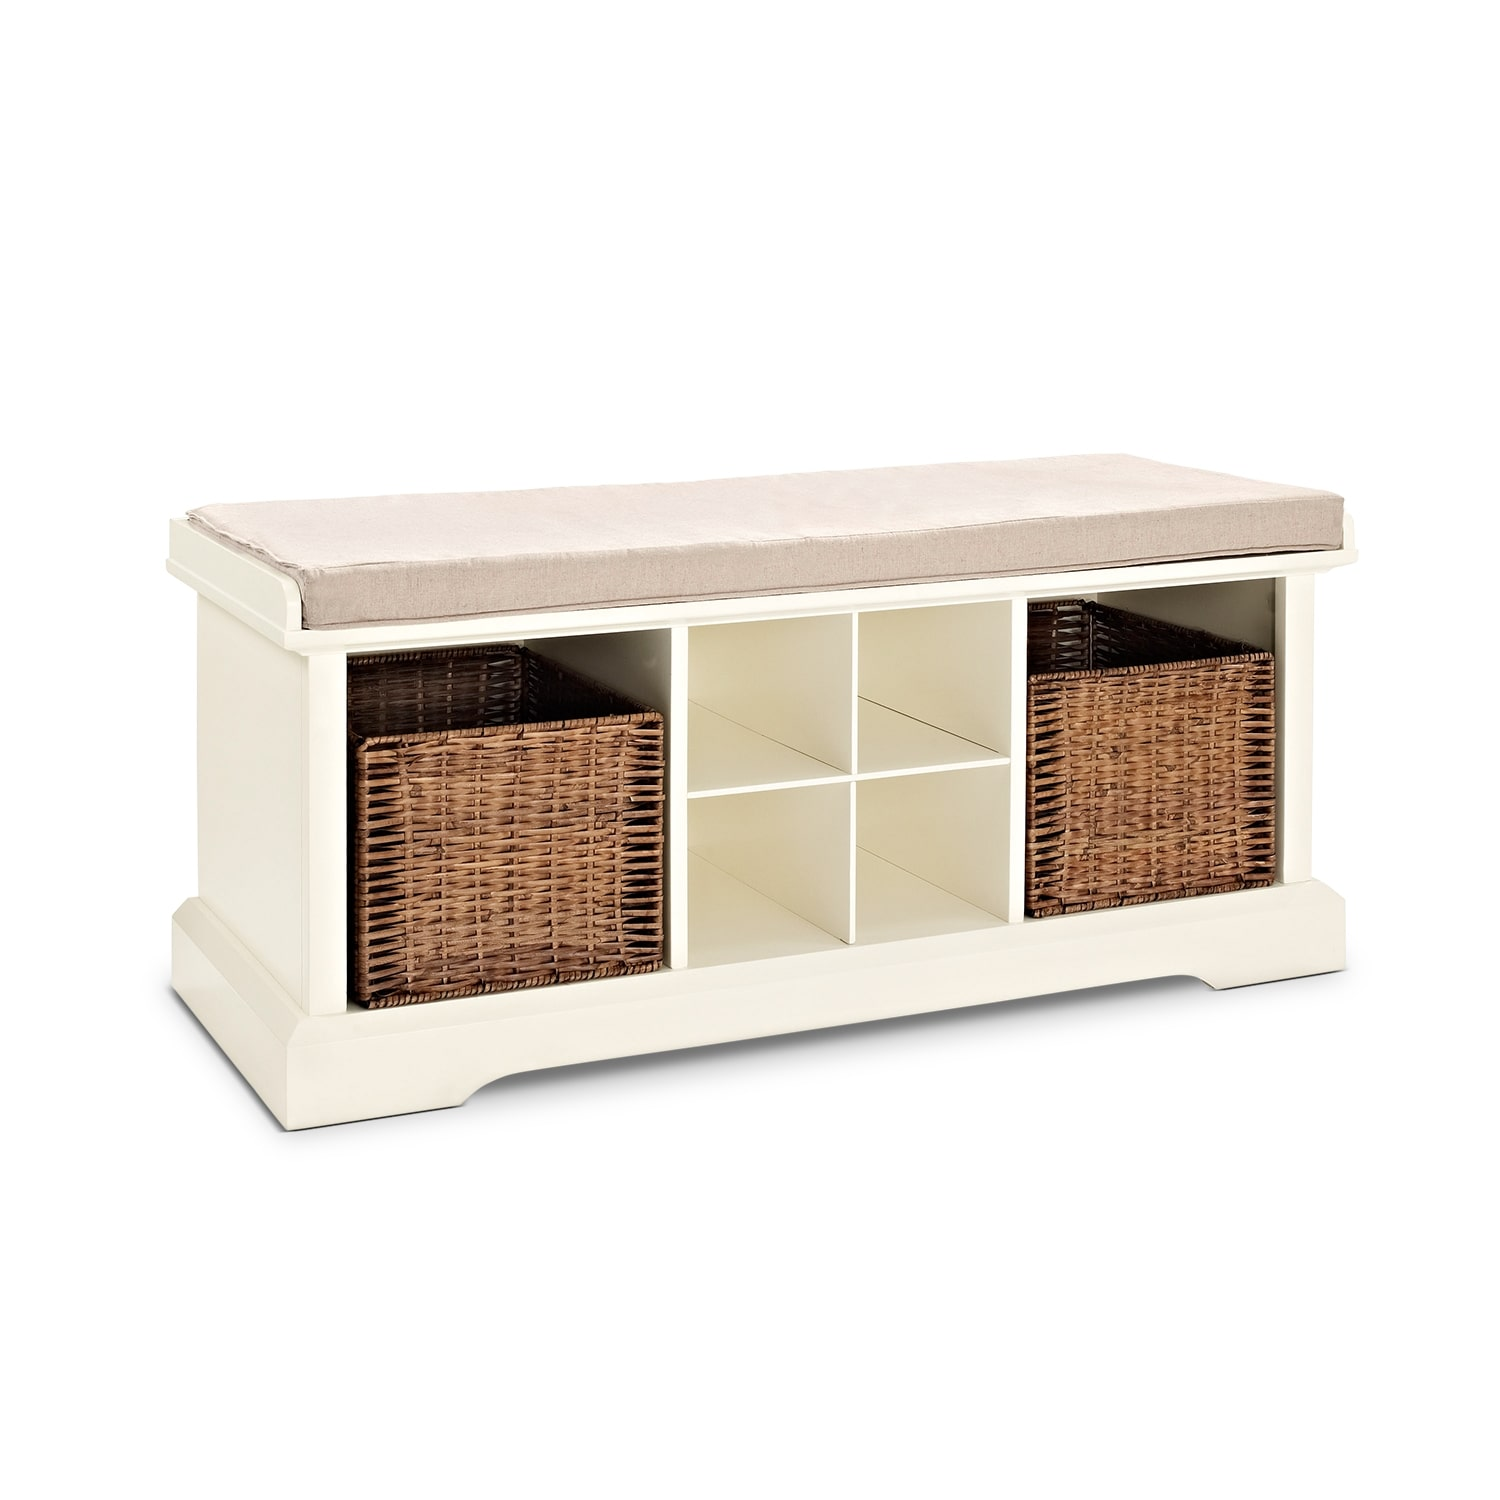 Levi white entryway storage bench value city furniture for Entryway mudroom bench